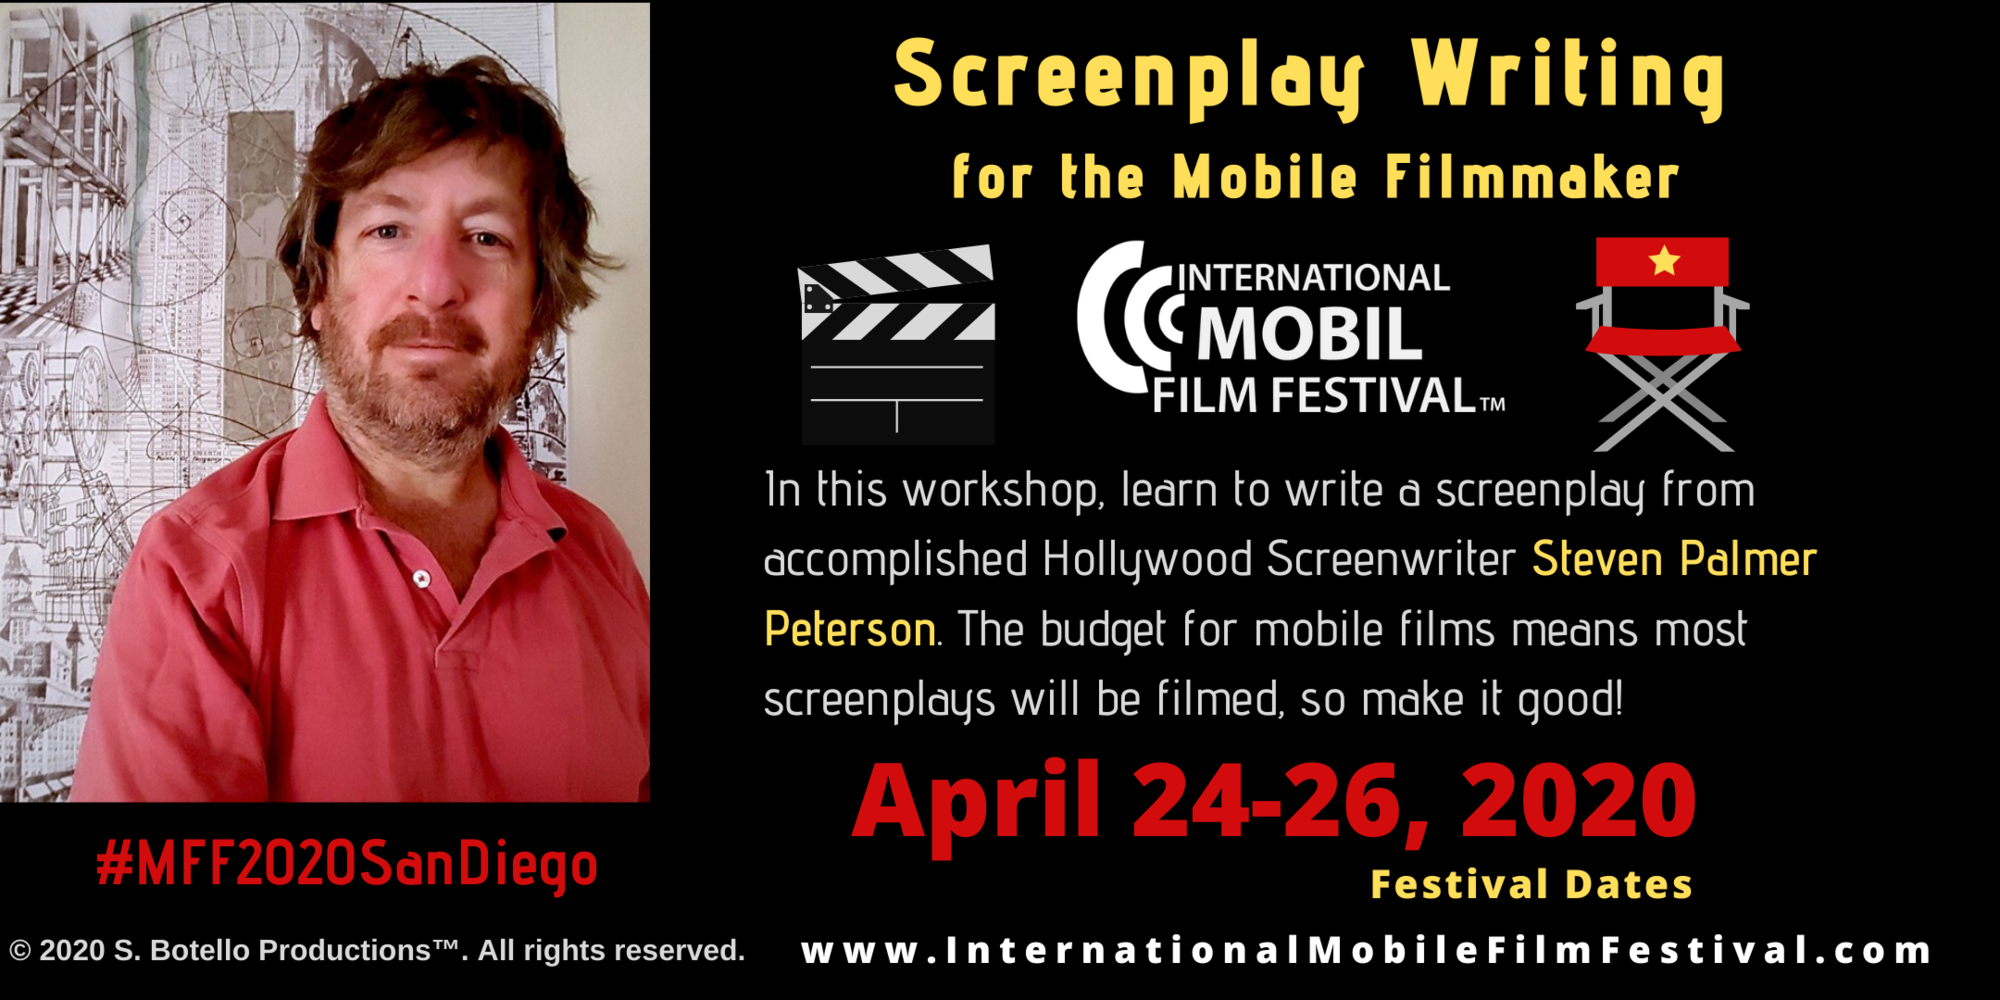 Screenplay Workshop IMFF 2020 2160X1080.png